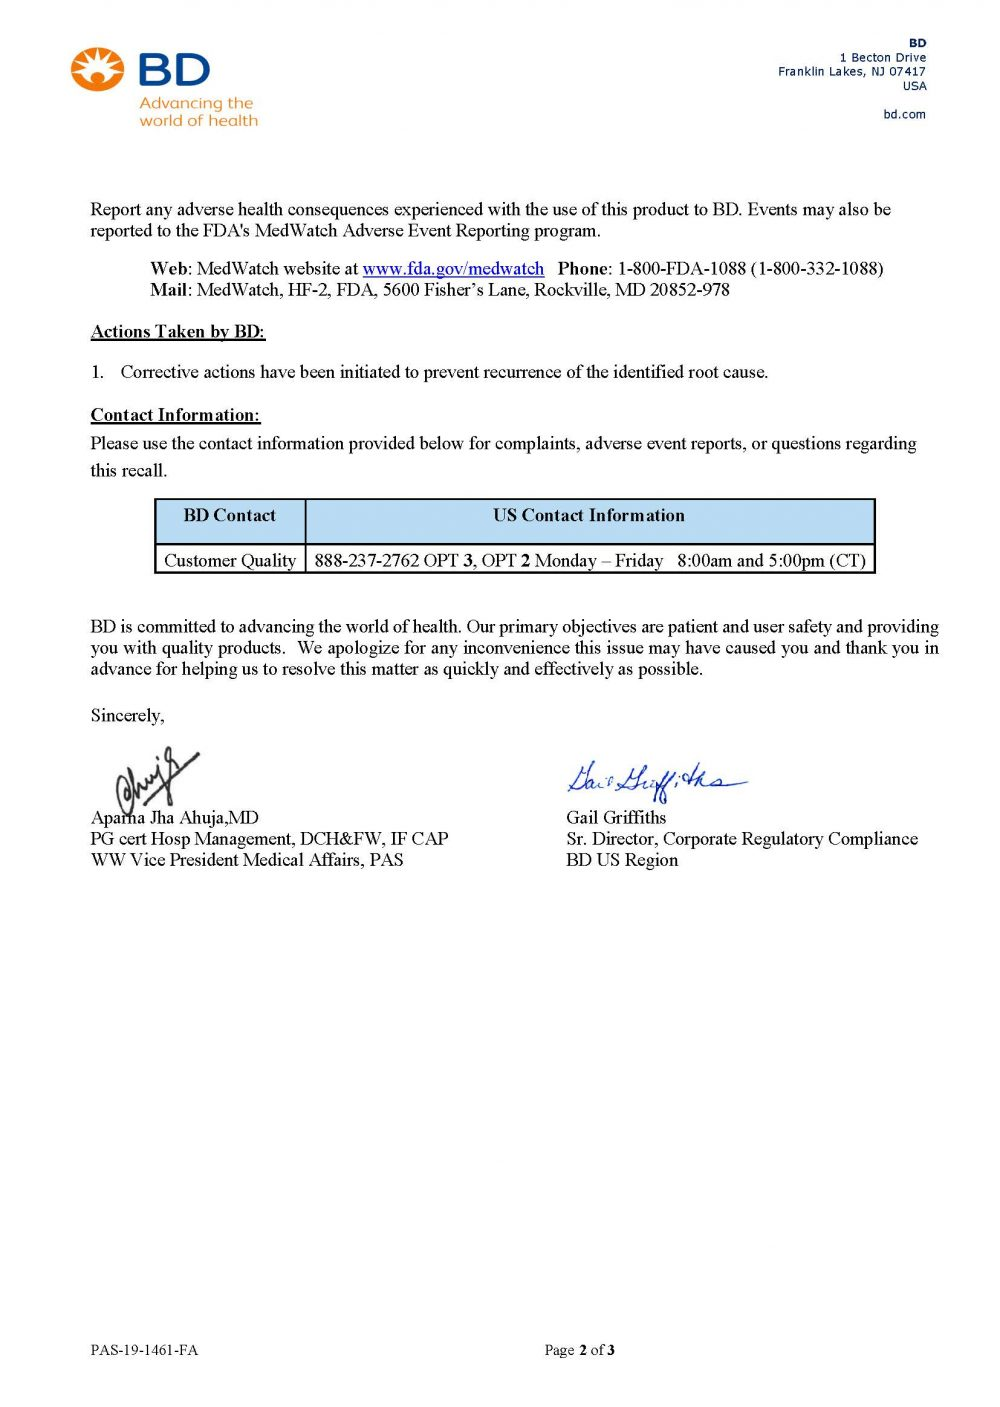 BD Vacutainer Recall Page 2